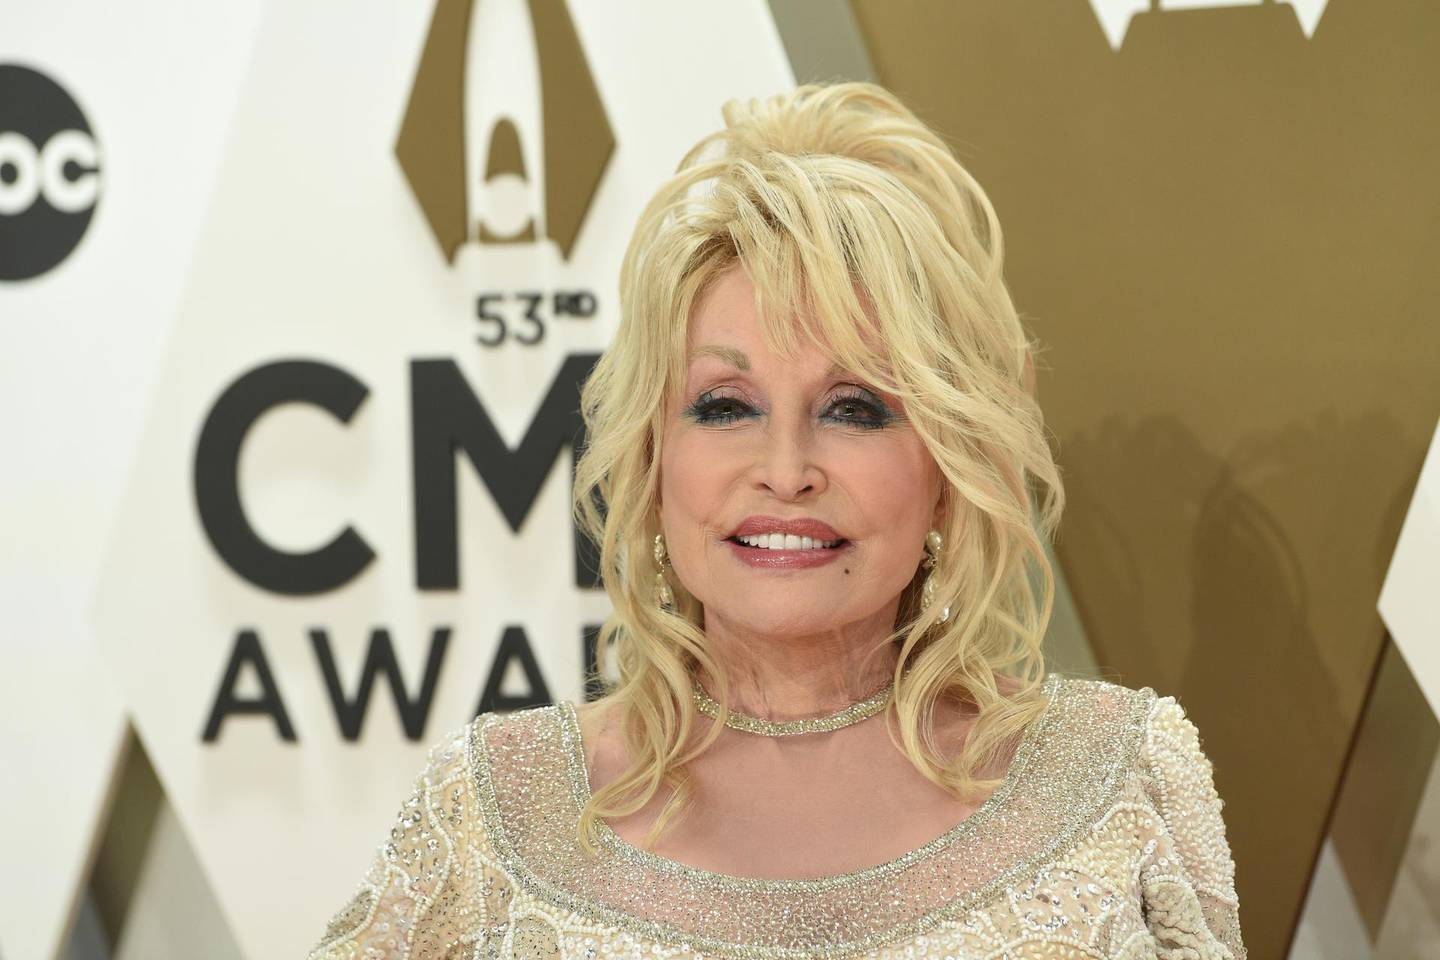 """File-This Nov. 13, 2019, file photo shows Dolly Parton arriving at the 53rd annual CMA Awards at Bridgestone Arena in Nashville, Tenn. Parton's new Netflix series """"Heartstrings"""" will tell a host of stories when it premieres on Friday. One will put the spotlight on Parton's home and people in the mountains of East Tennessee. The series debuts on the streaming platform with eight episodes each telling a story based on one of Parton's songs.(Photo by Evan Agostini/Invision/AP, File)"""